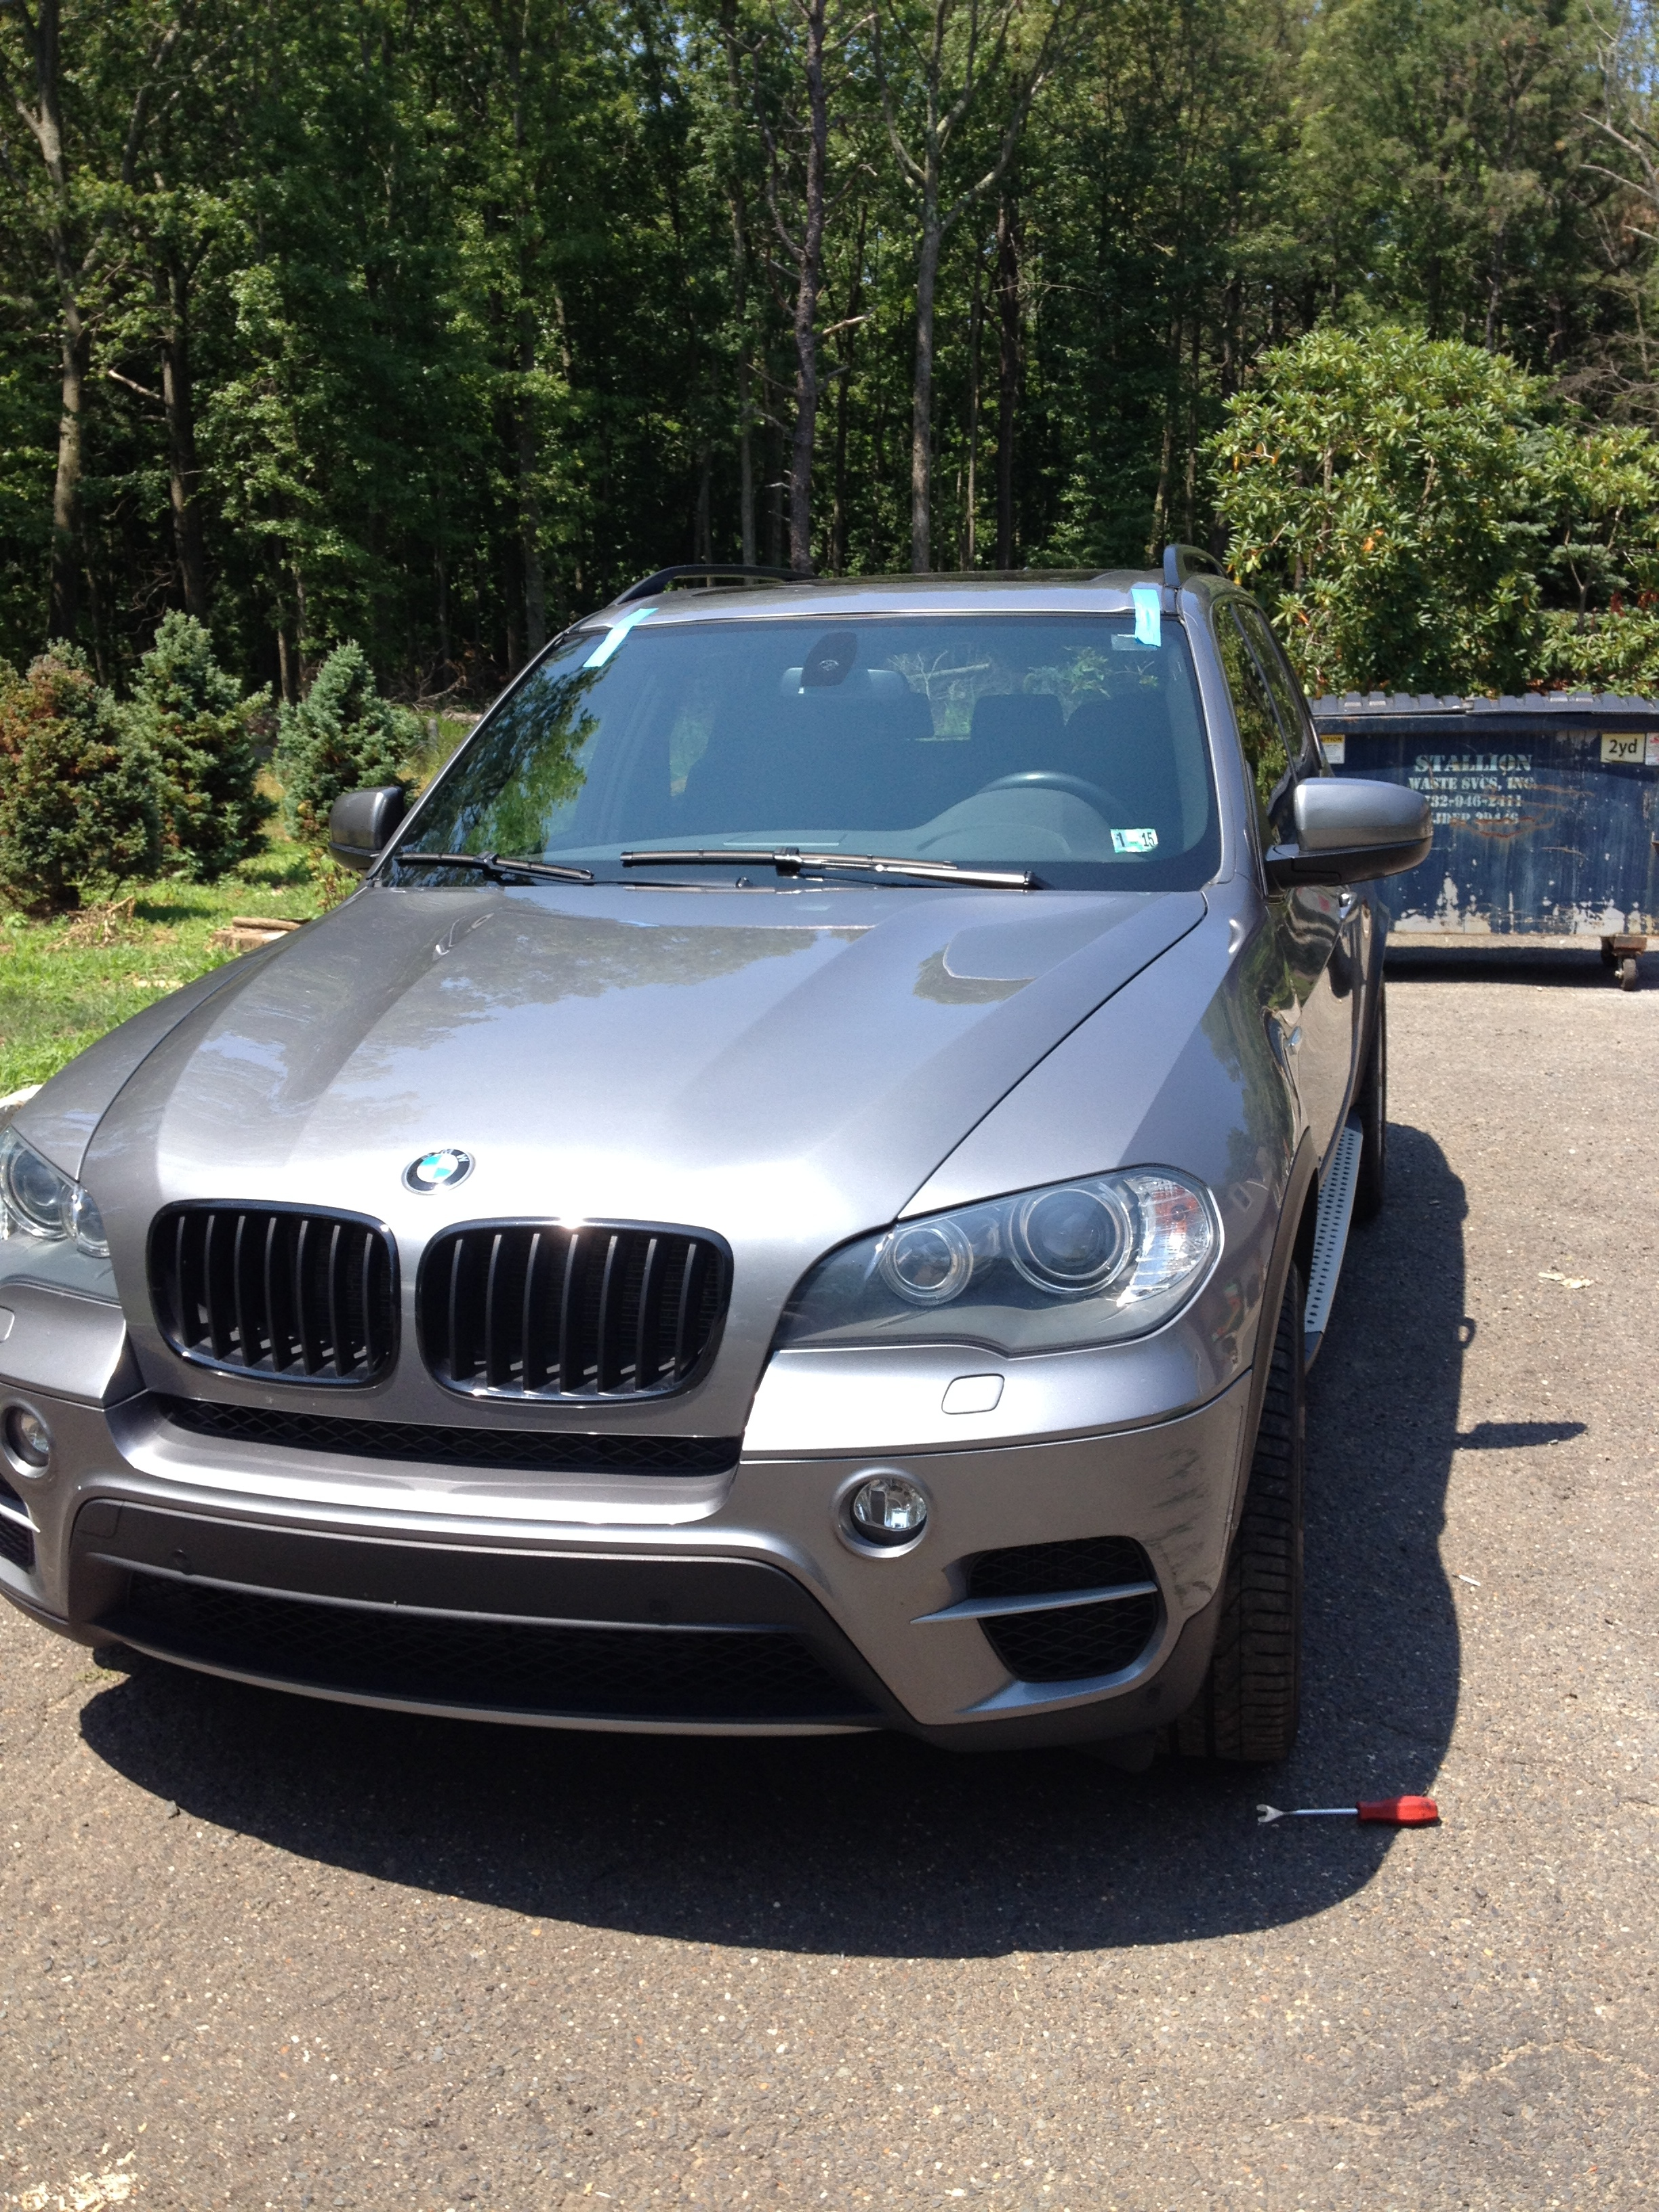 2012 BMW X5 automobile window replacement installation in New Jersey for same day windshield replacement by Platinum Auto Repair Glass New Jersey @platinumautoglassnj.com